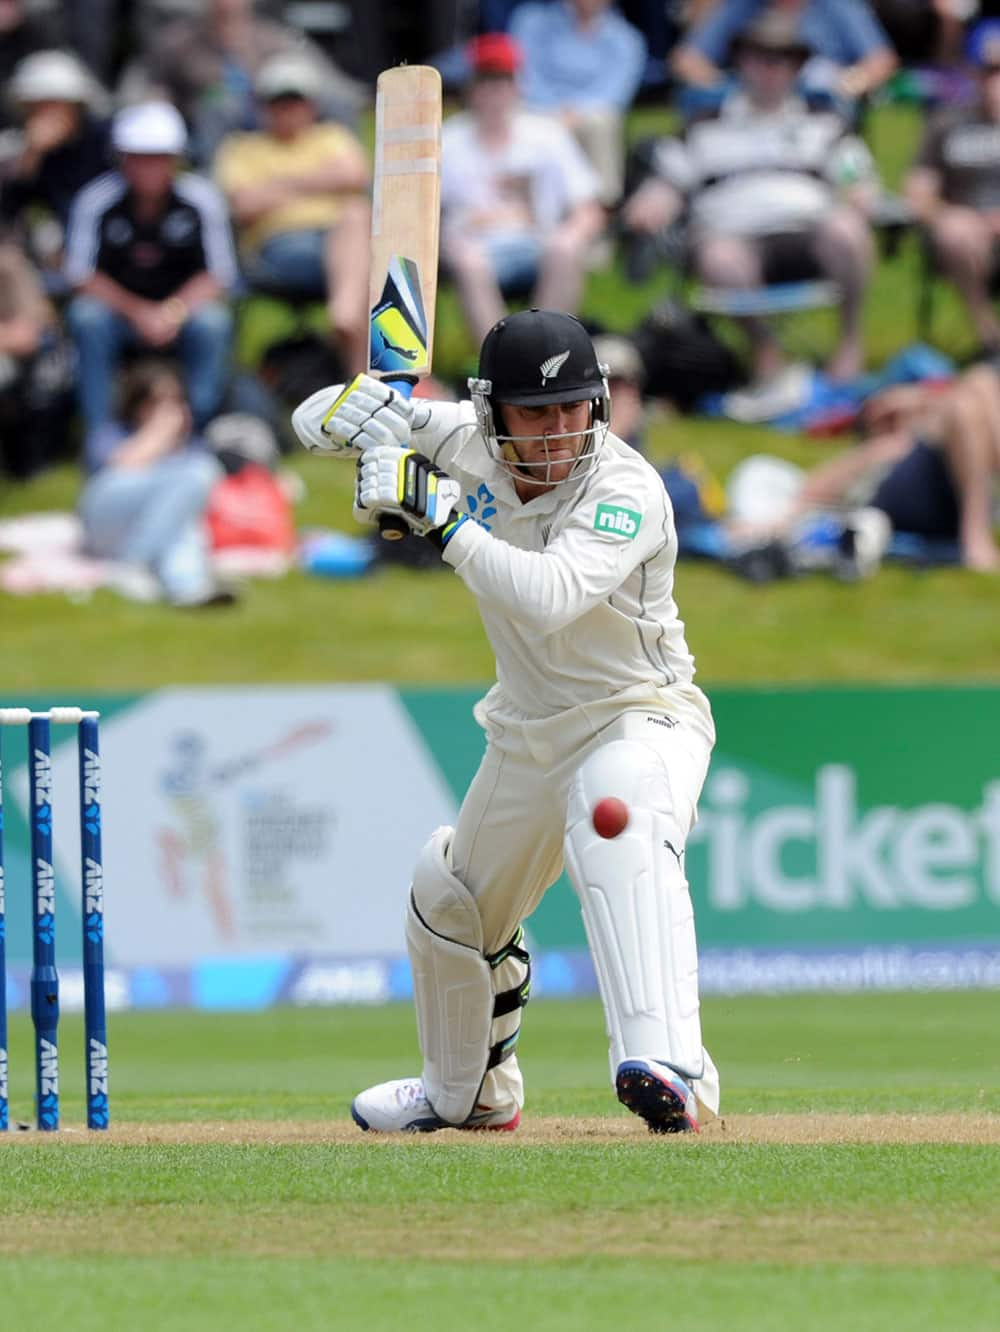 New Zealand`s Brendon McCullum bats against West Indies on the first day of the first cricket test in Dunedin, New Zealand.